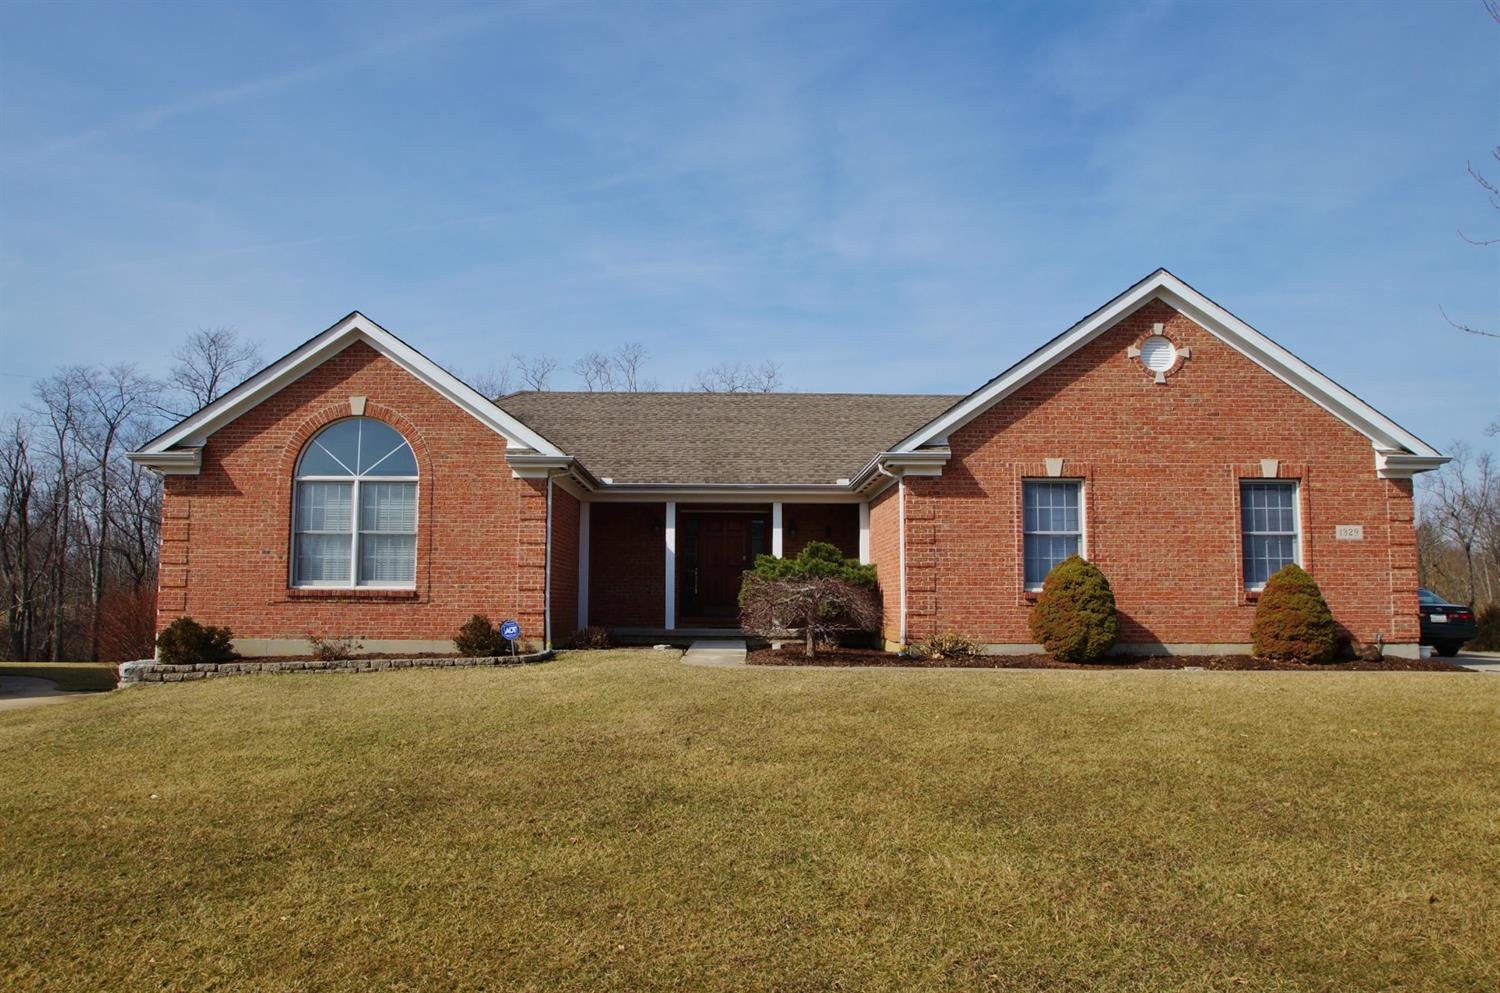 1329 Wexford Ln Green Twp. - Hamilton Co., OH